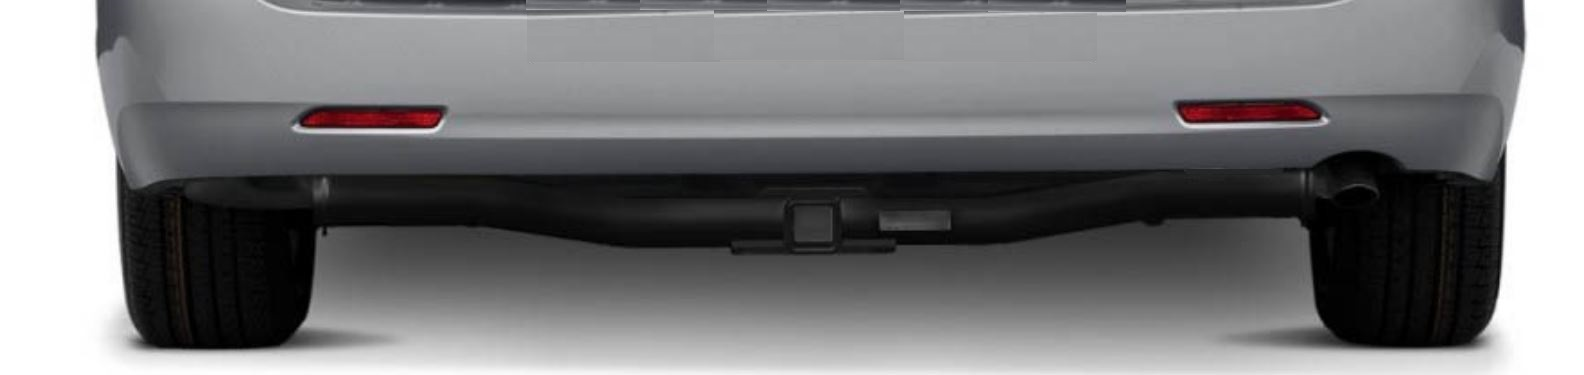 69481B TrailFX Trailer Hitch Rear Class III